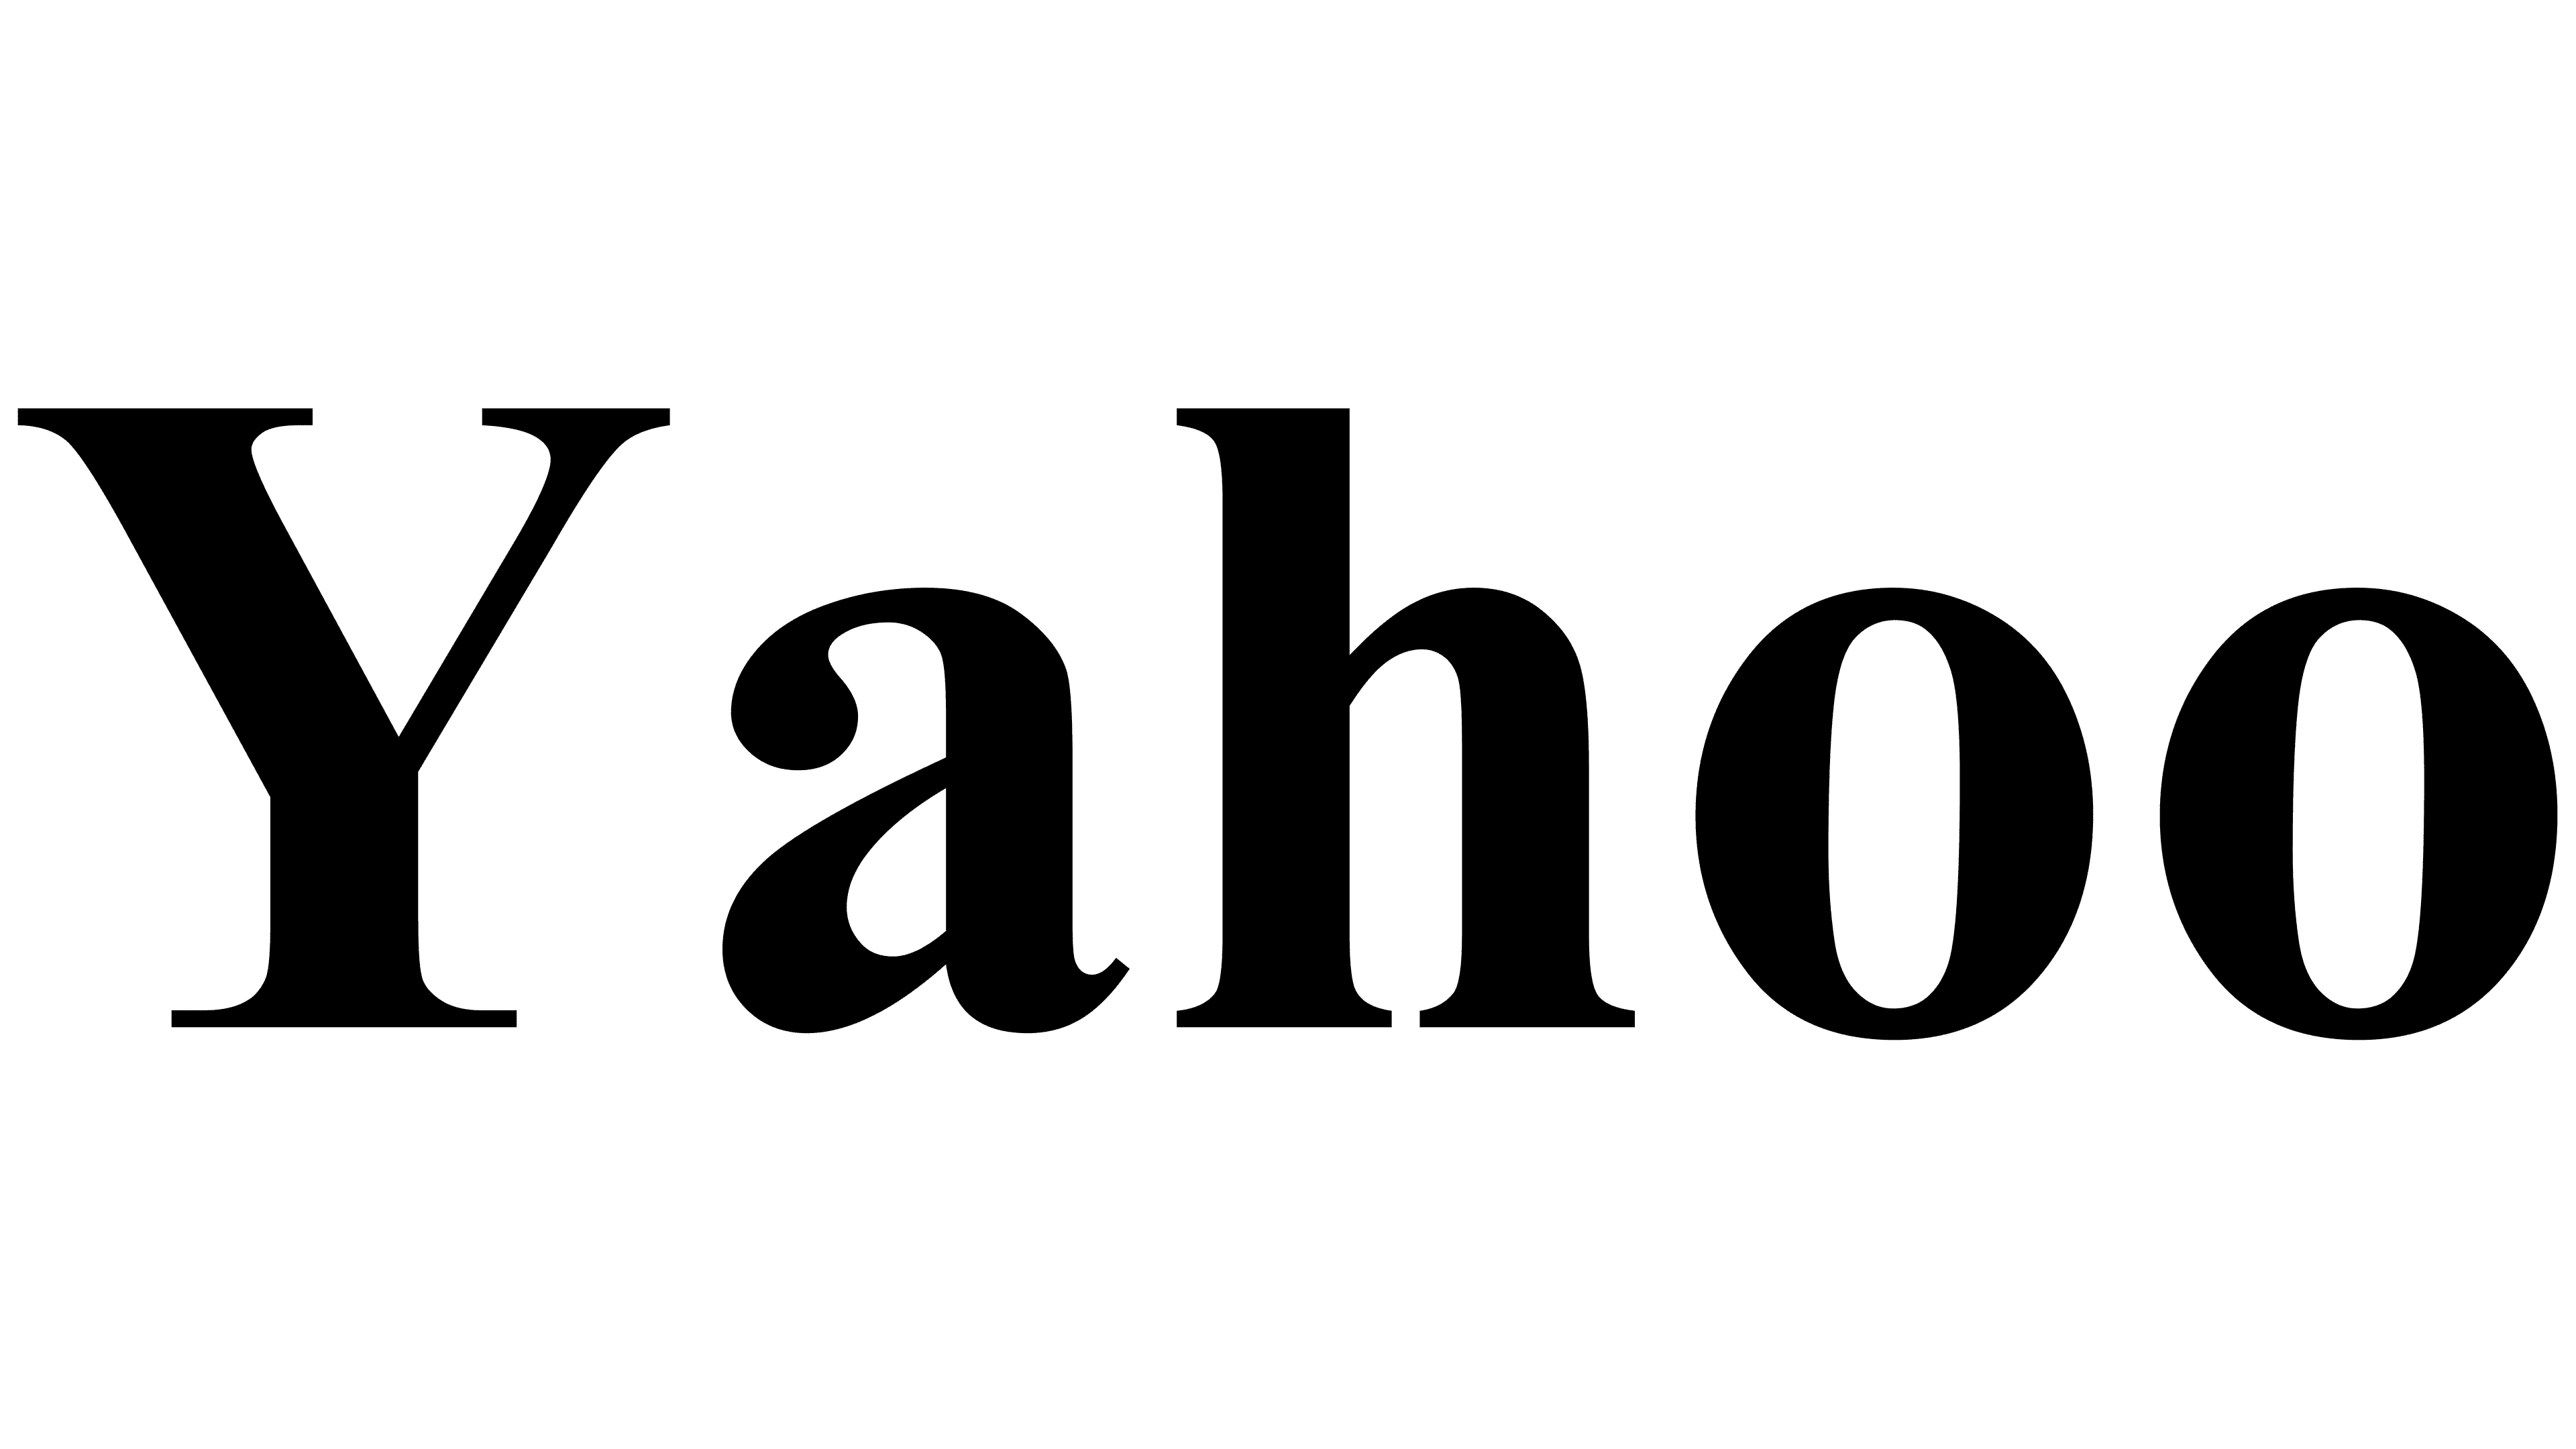 Yahoo Logo The Most Famous Brands And Company Logos In The World